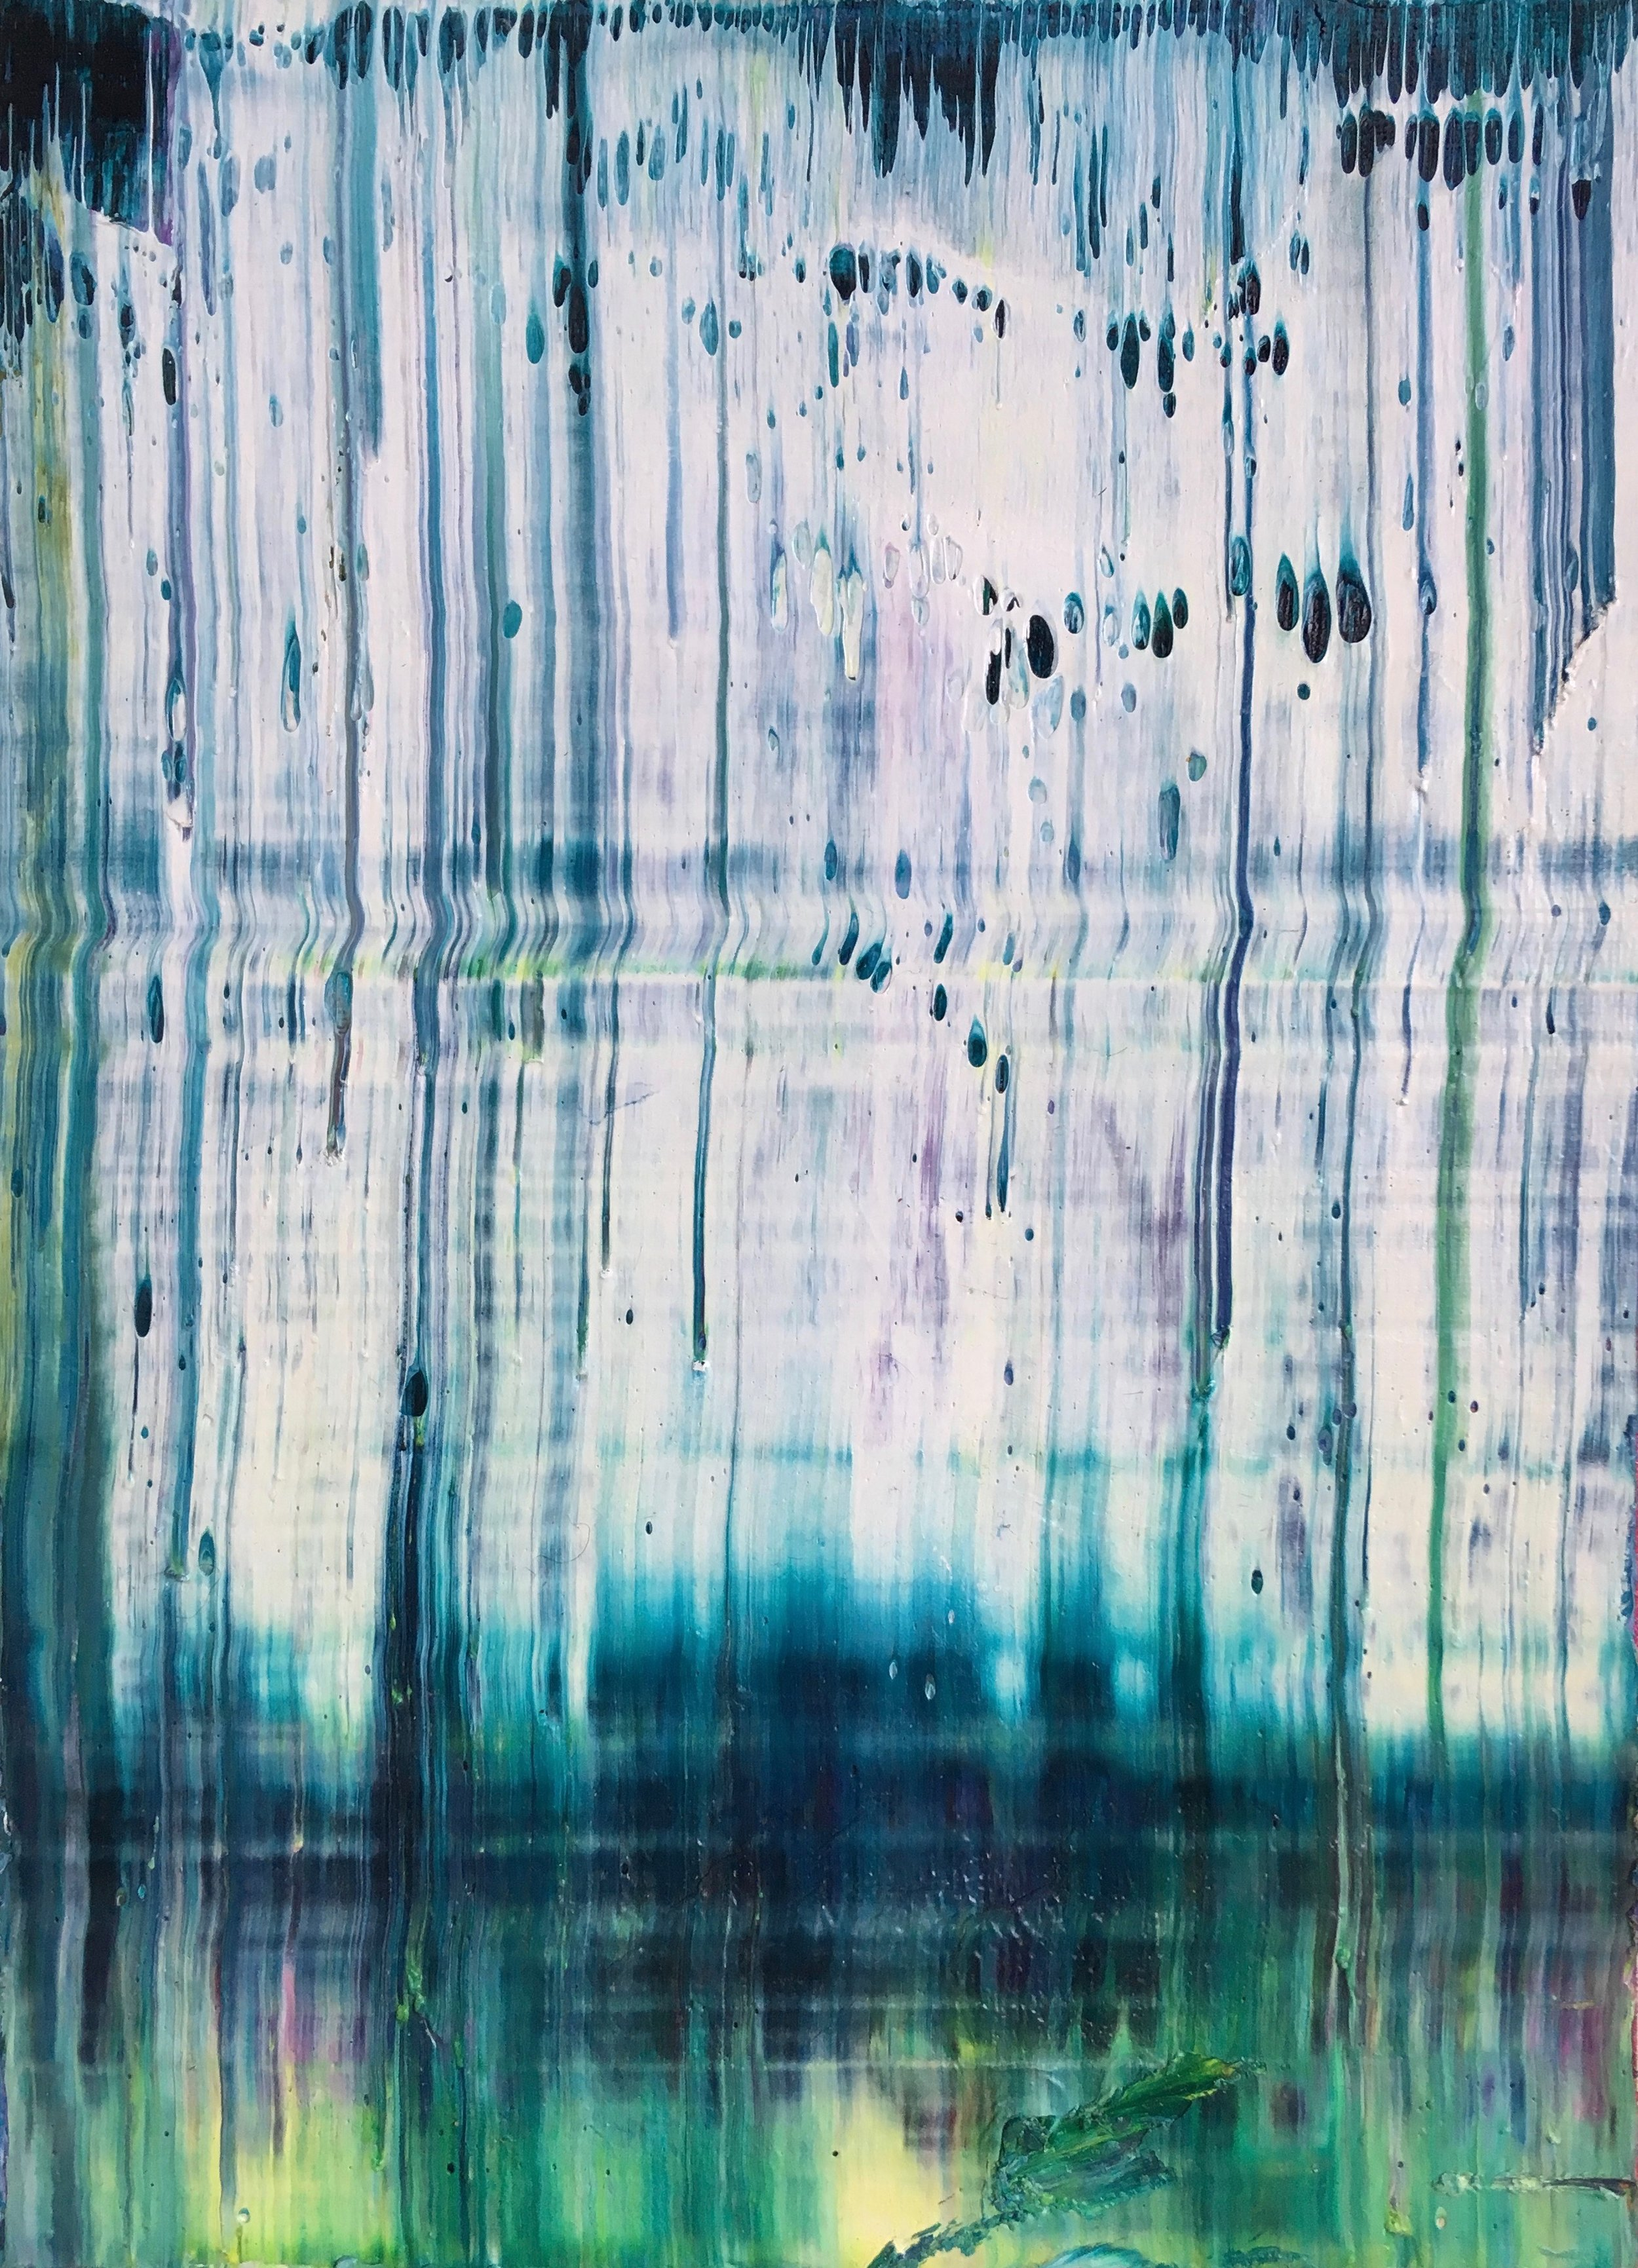 """""""Clean"""" is an original, abstract oil painting created by Los Angeles based artist, Laura Viapiano."""